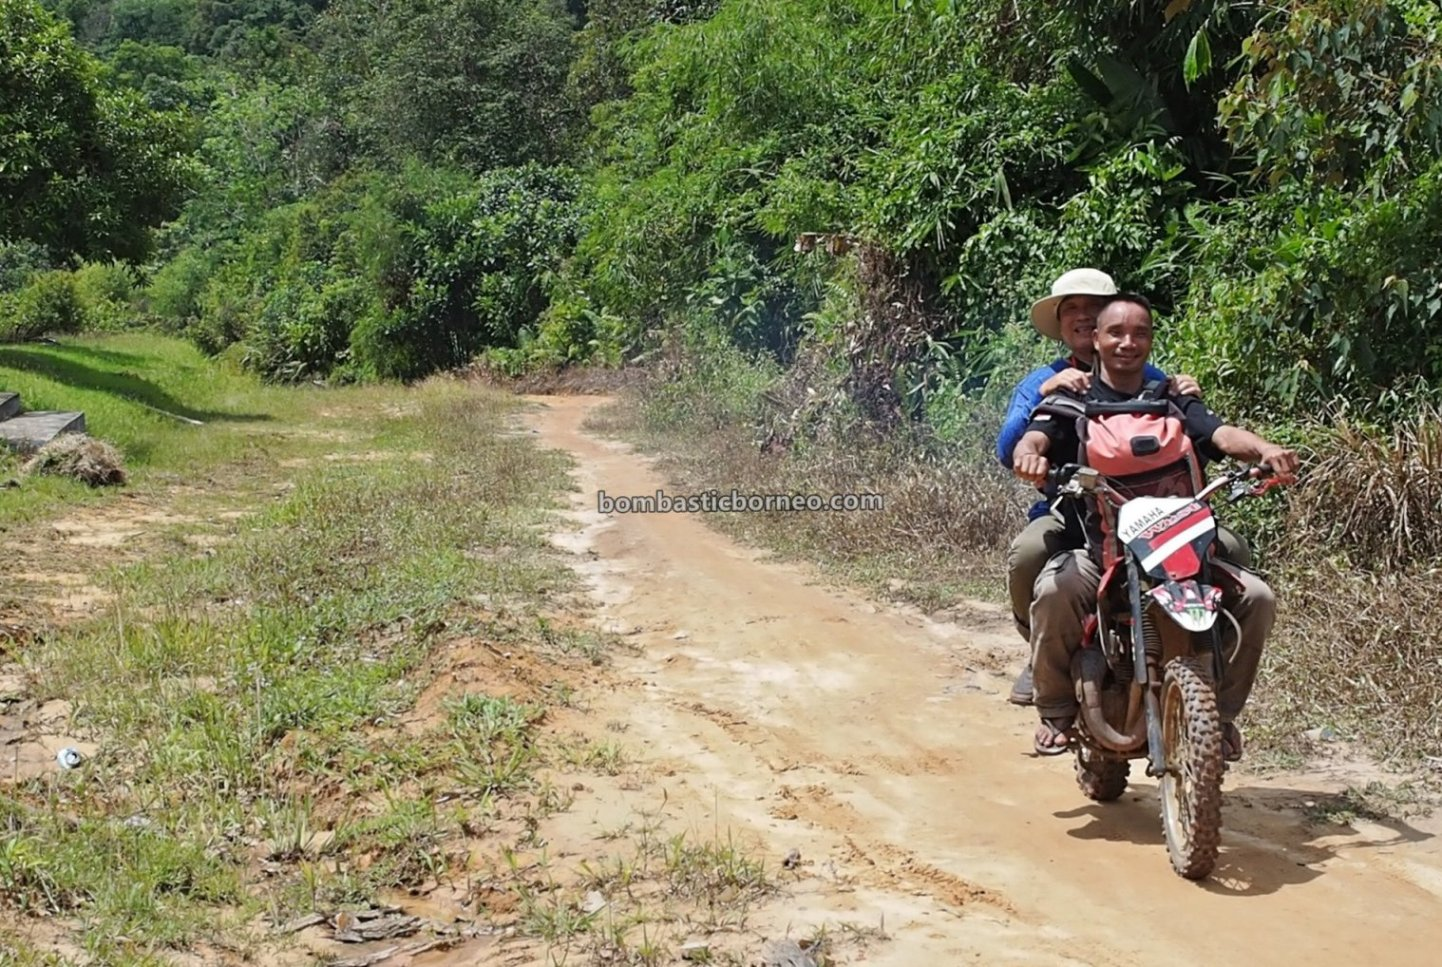 Dusun Tamong, highland, motorbike ride, authentic, village, backpackers, exploration, Siding, native, Dayak Bidayuh, Tourism, travel guide, 跨境婆罗洲游踪, 印尼西加里曼丹, 孟加映原住民部落